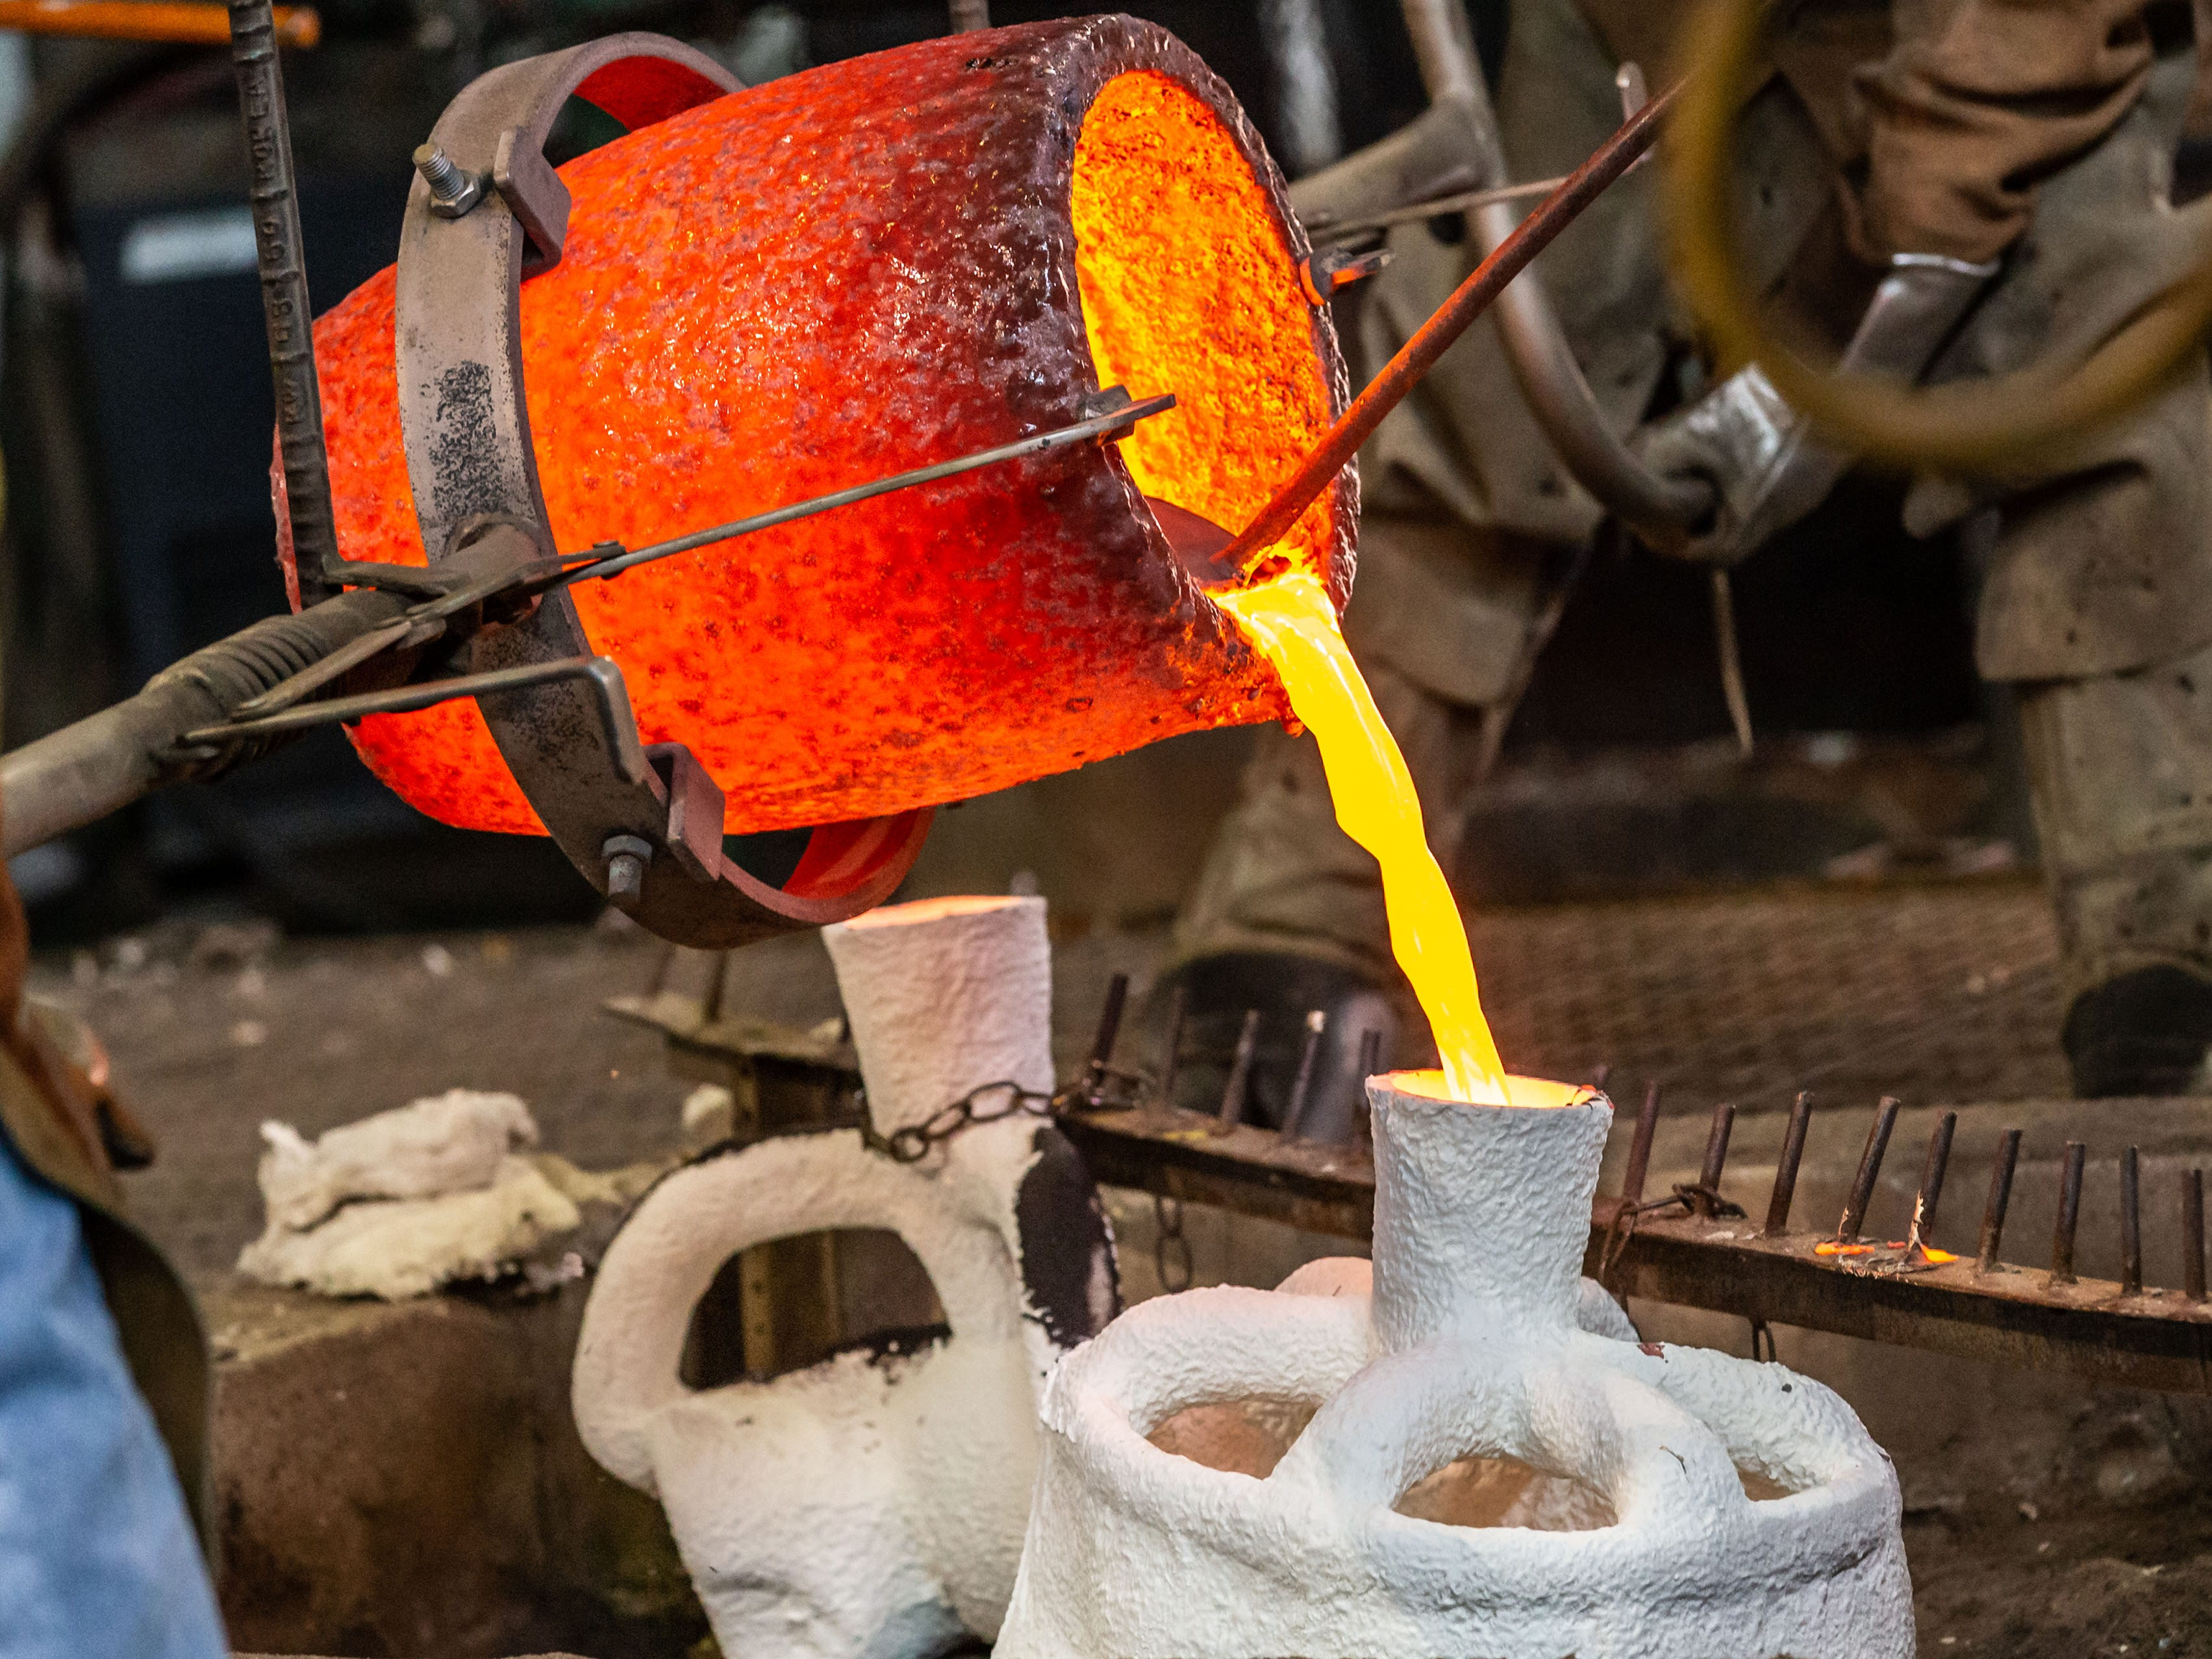 """Metal workers at Vanguard Sculpture Services in Milwaukee pour molten bronze into pre-heated mold shells as they create components of """"Da Crusher"""" bronze statue on Wednesday, March 27, 2019."""